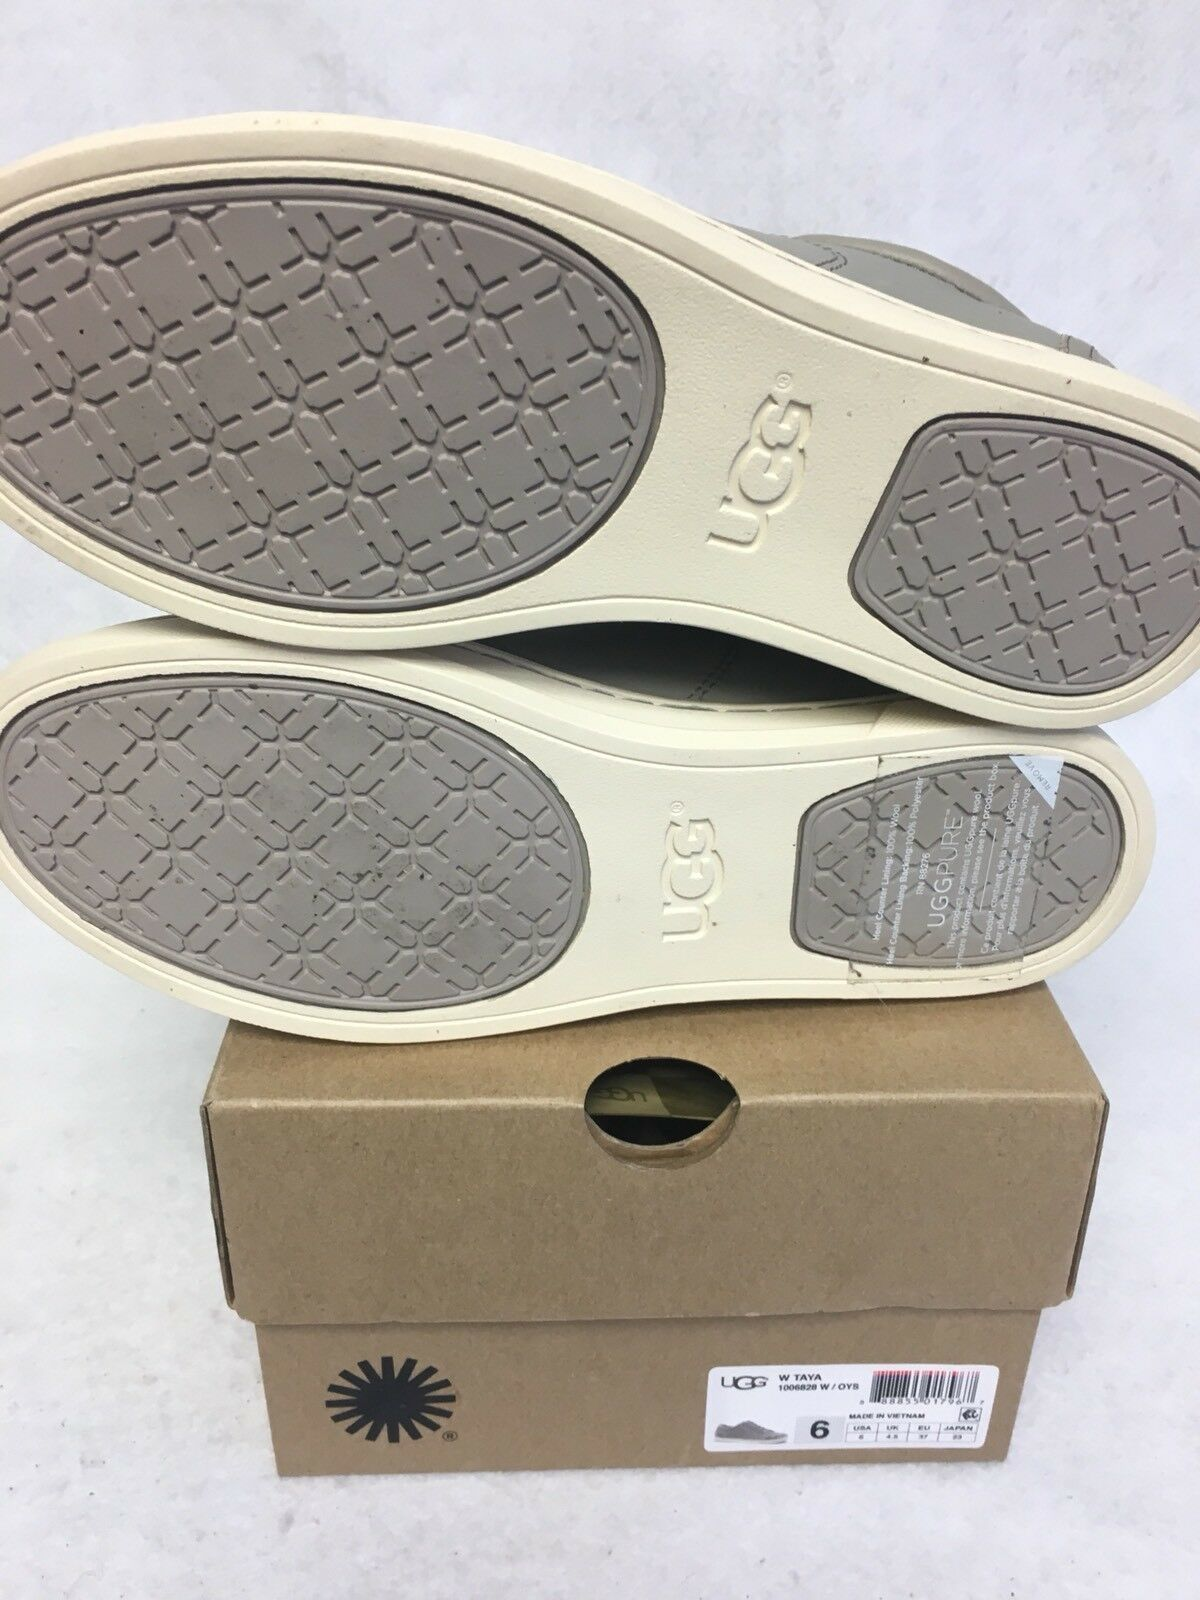 UGG Australia TAYA Oyster LEATHER FASHION SNEAKERS WOMENS 1006828 Lace Up Shoes